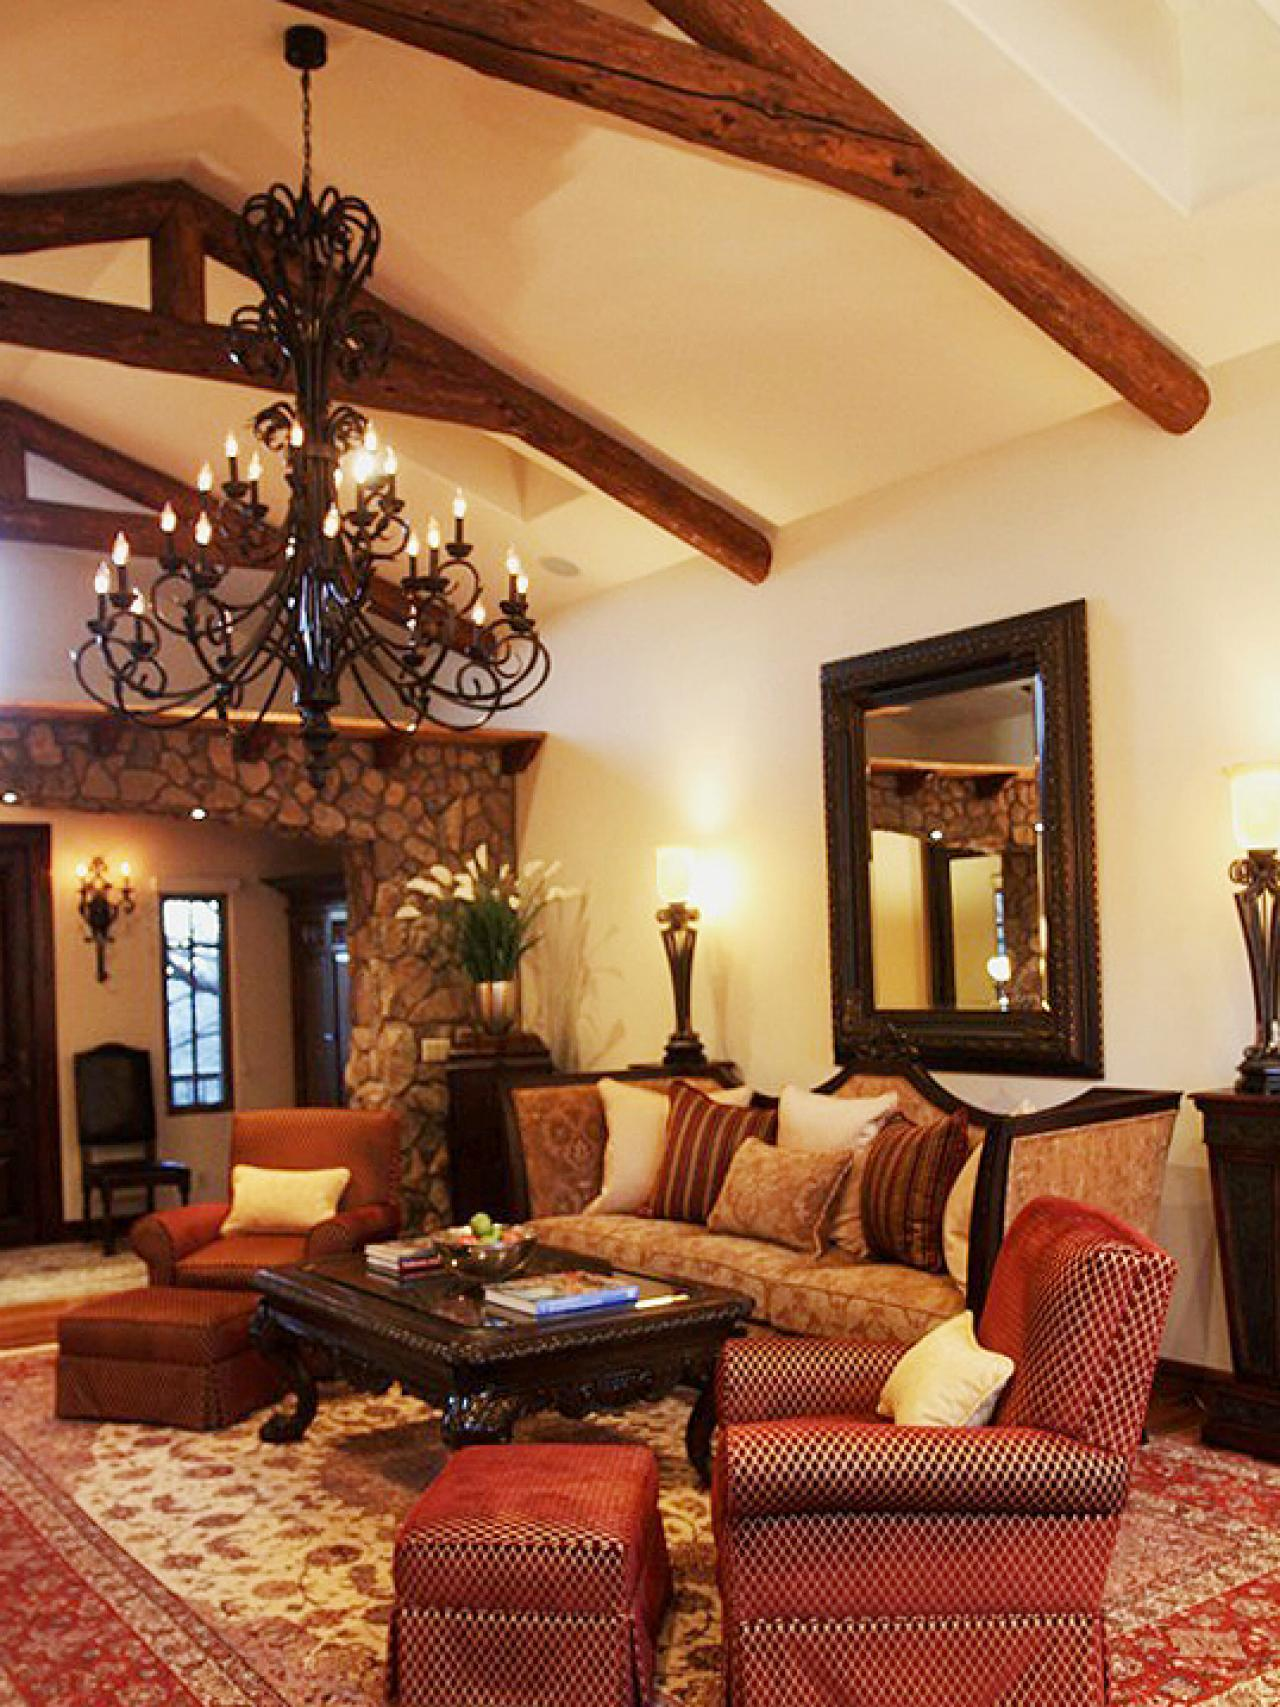 Wonderful Elegant Spanish Living Room With Exposing Beams Classic Chandelier Old  Style Of Sofas And Big Mirror